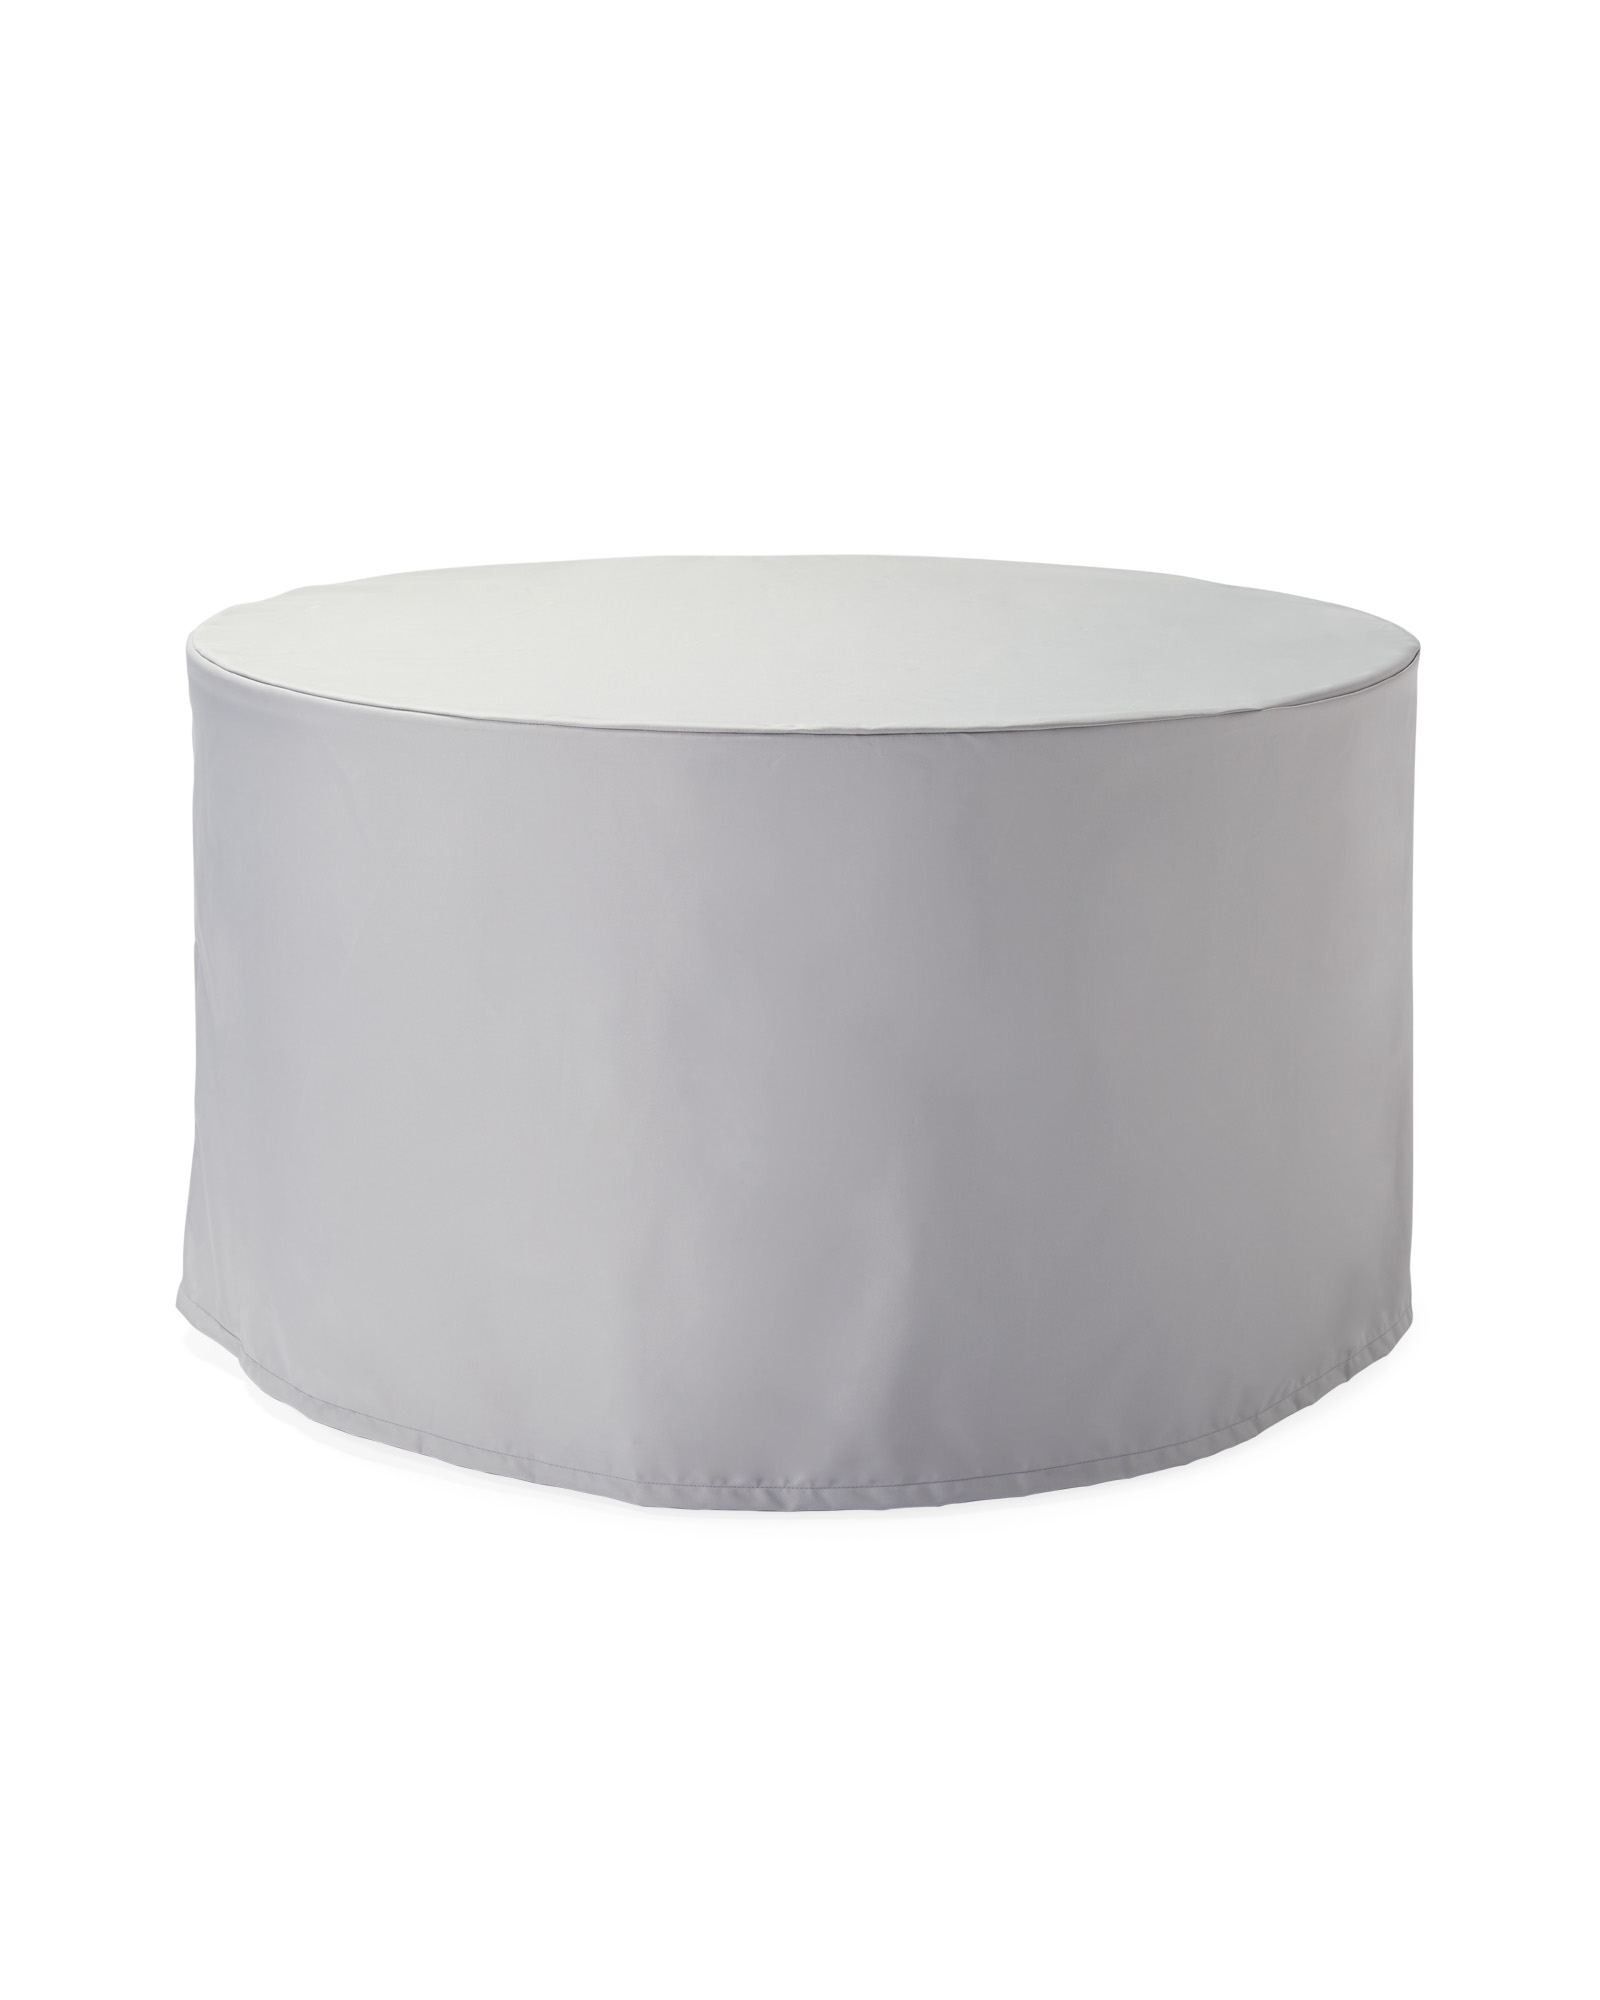 Crosby Round Dining Outdoor Cover,